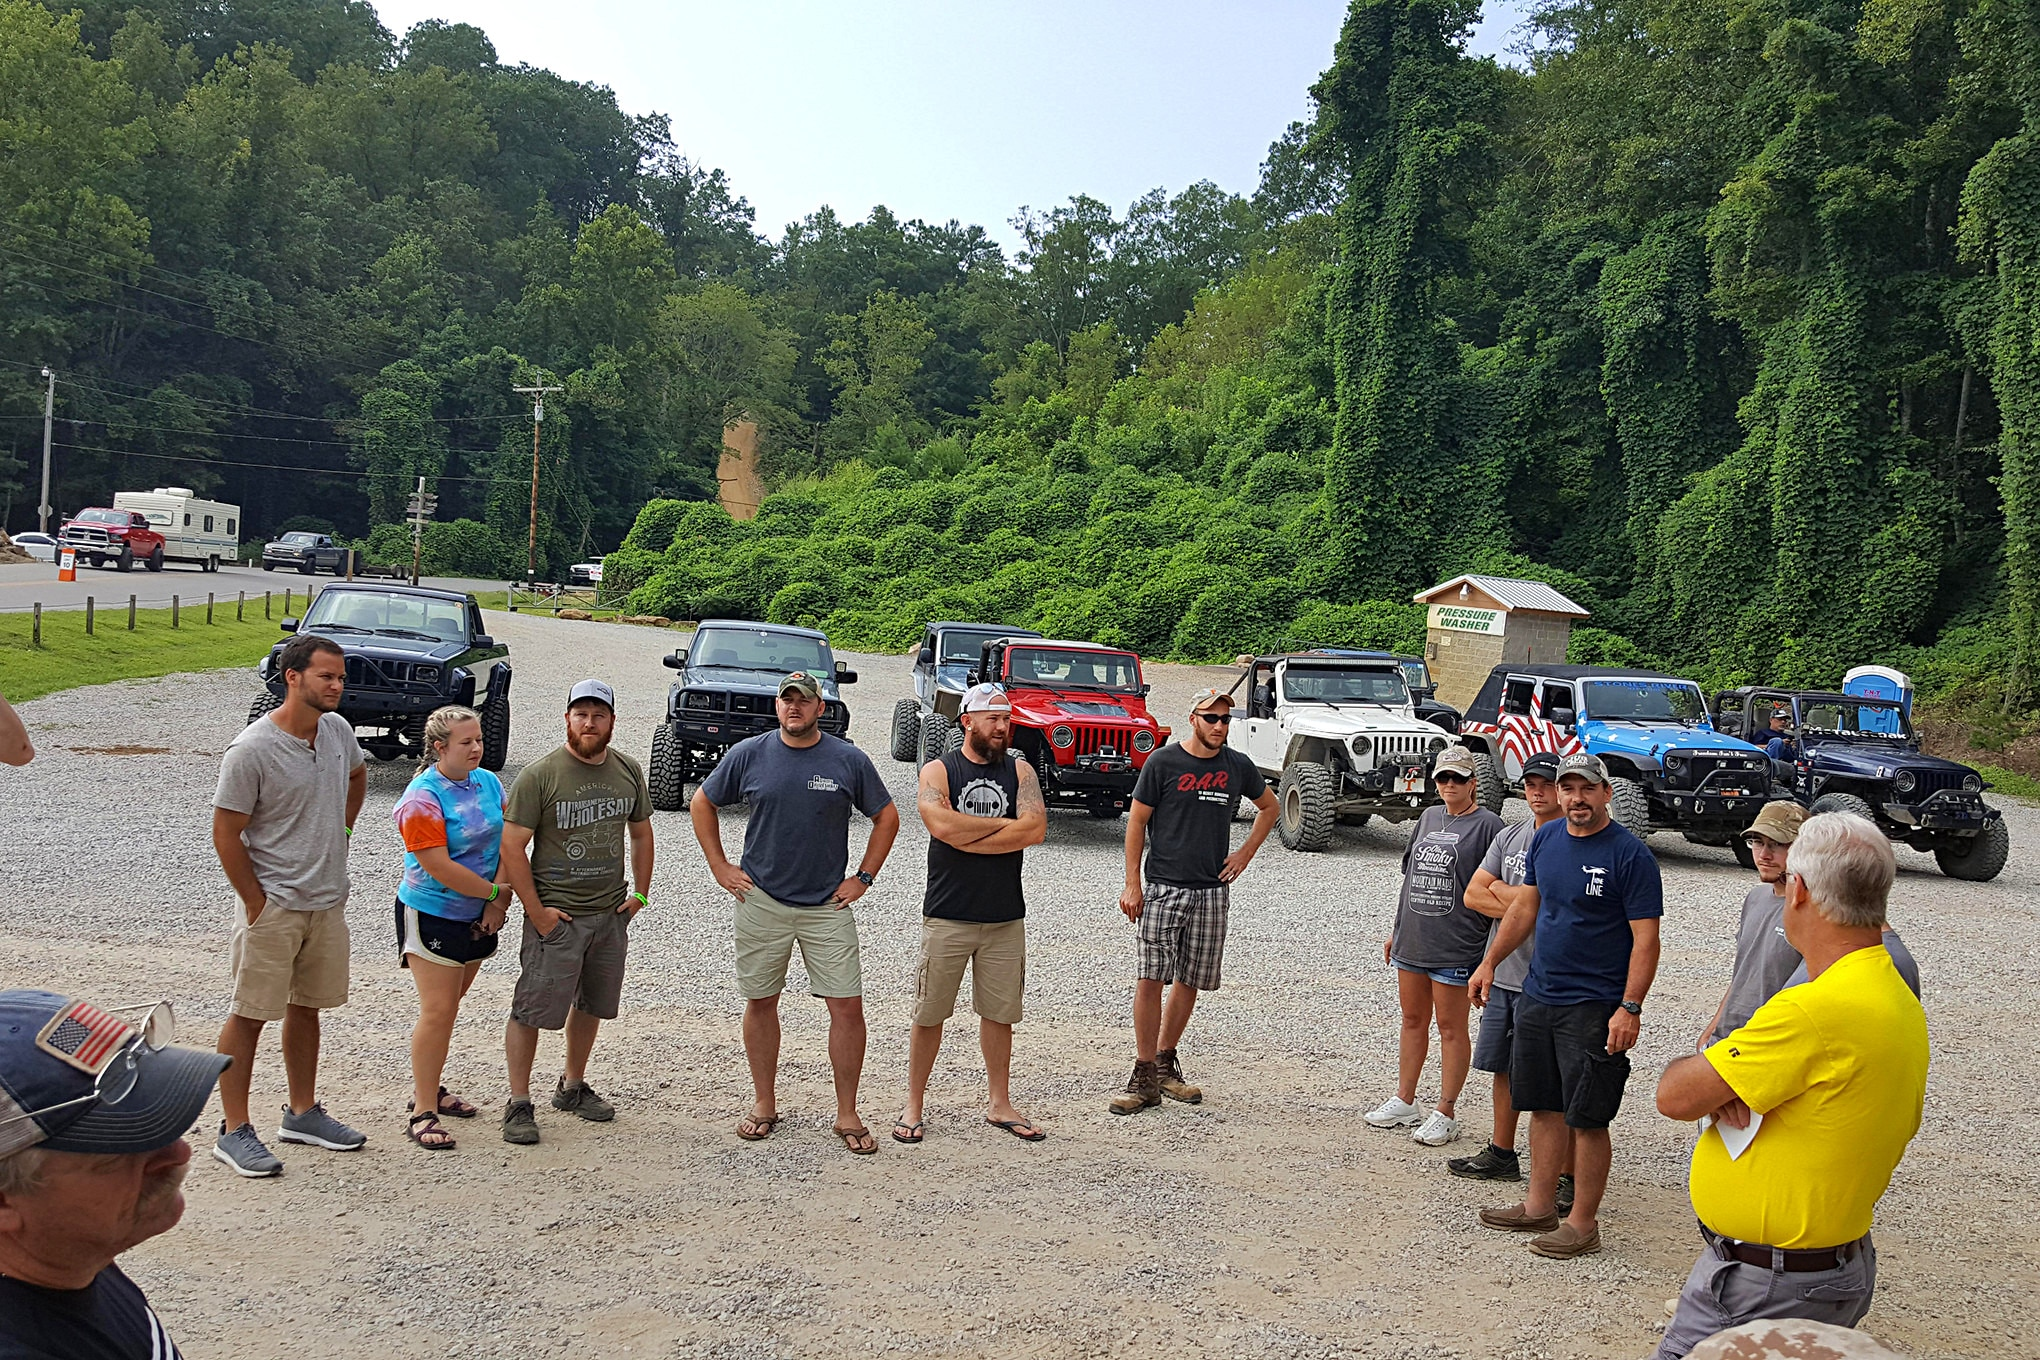 Members of the Stones River Jeep Club were our guides for the day. We held the obligatory and essential driver's meeting at the Wind Rock General Store prior to hitting the trail.